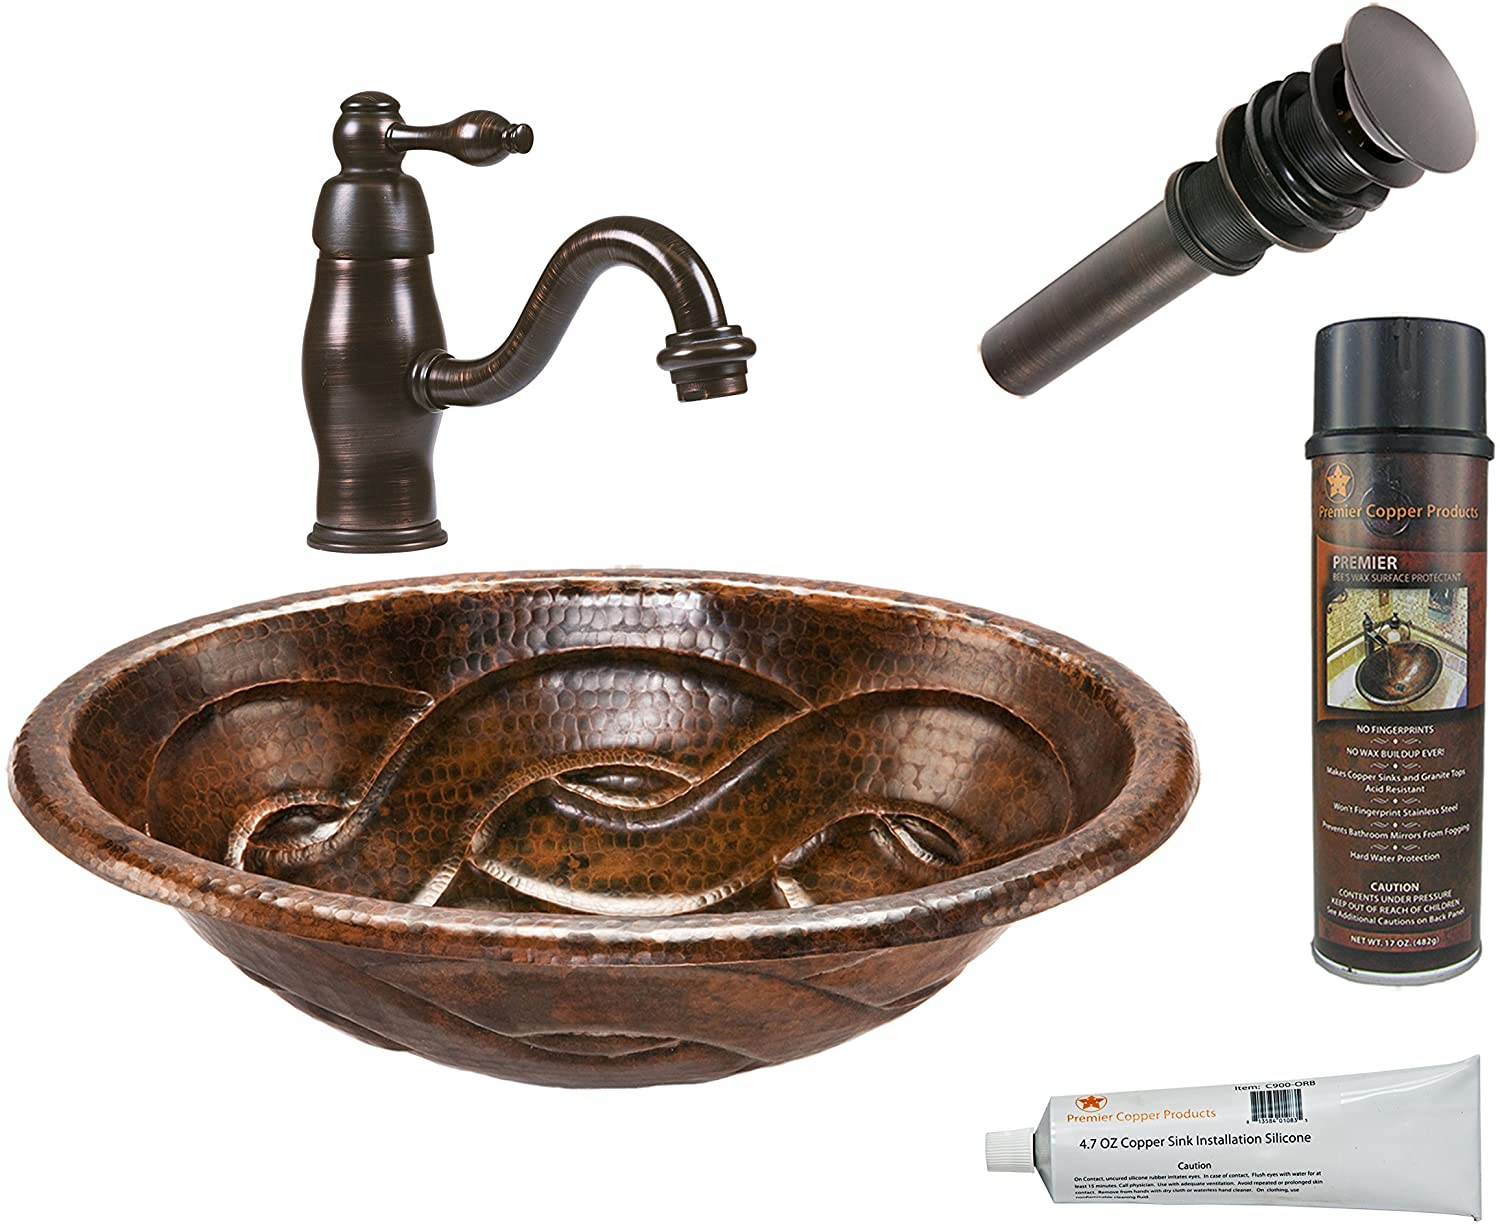 Premier Copper Products LO19RBDDB Oval Braid Self Rimming Hammed Copper Sink with Single Handle Faucet Package, Oil Rubbed Bronze